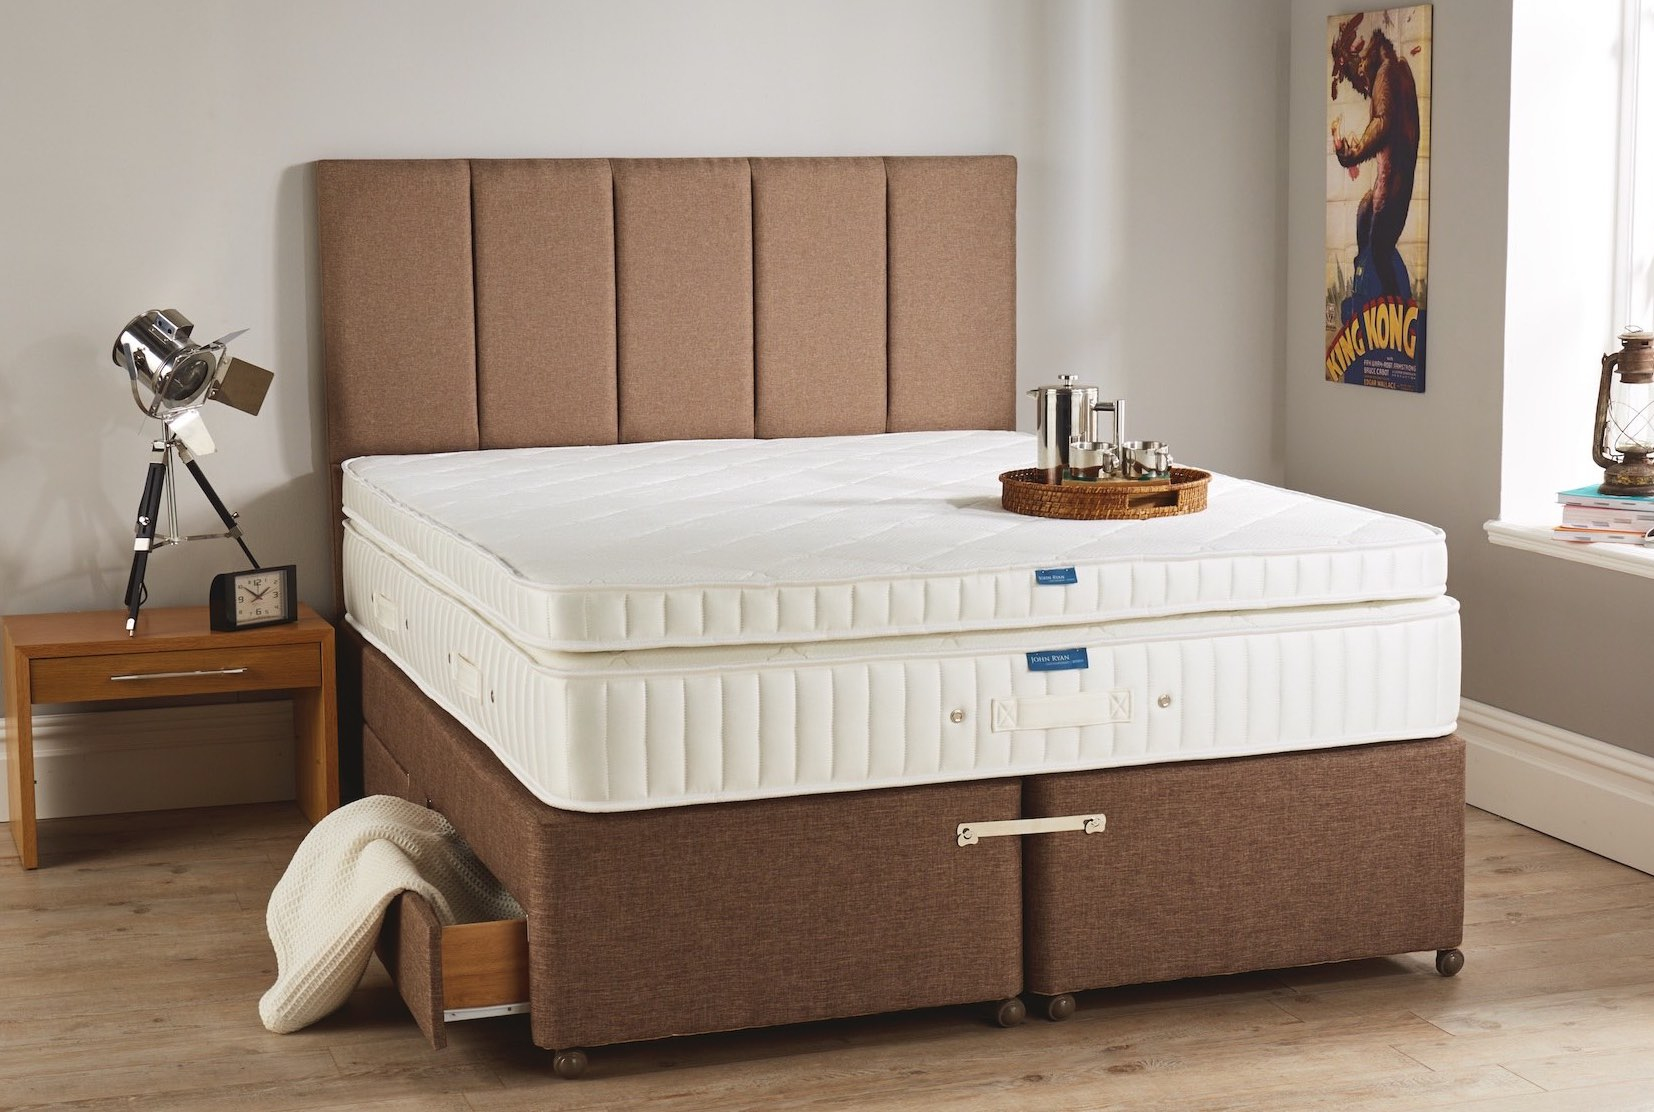 A deep mattress with a mattress topper on top